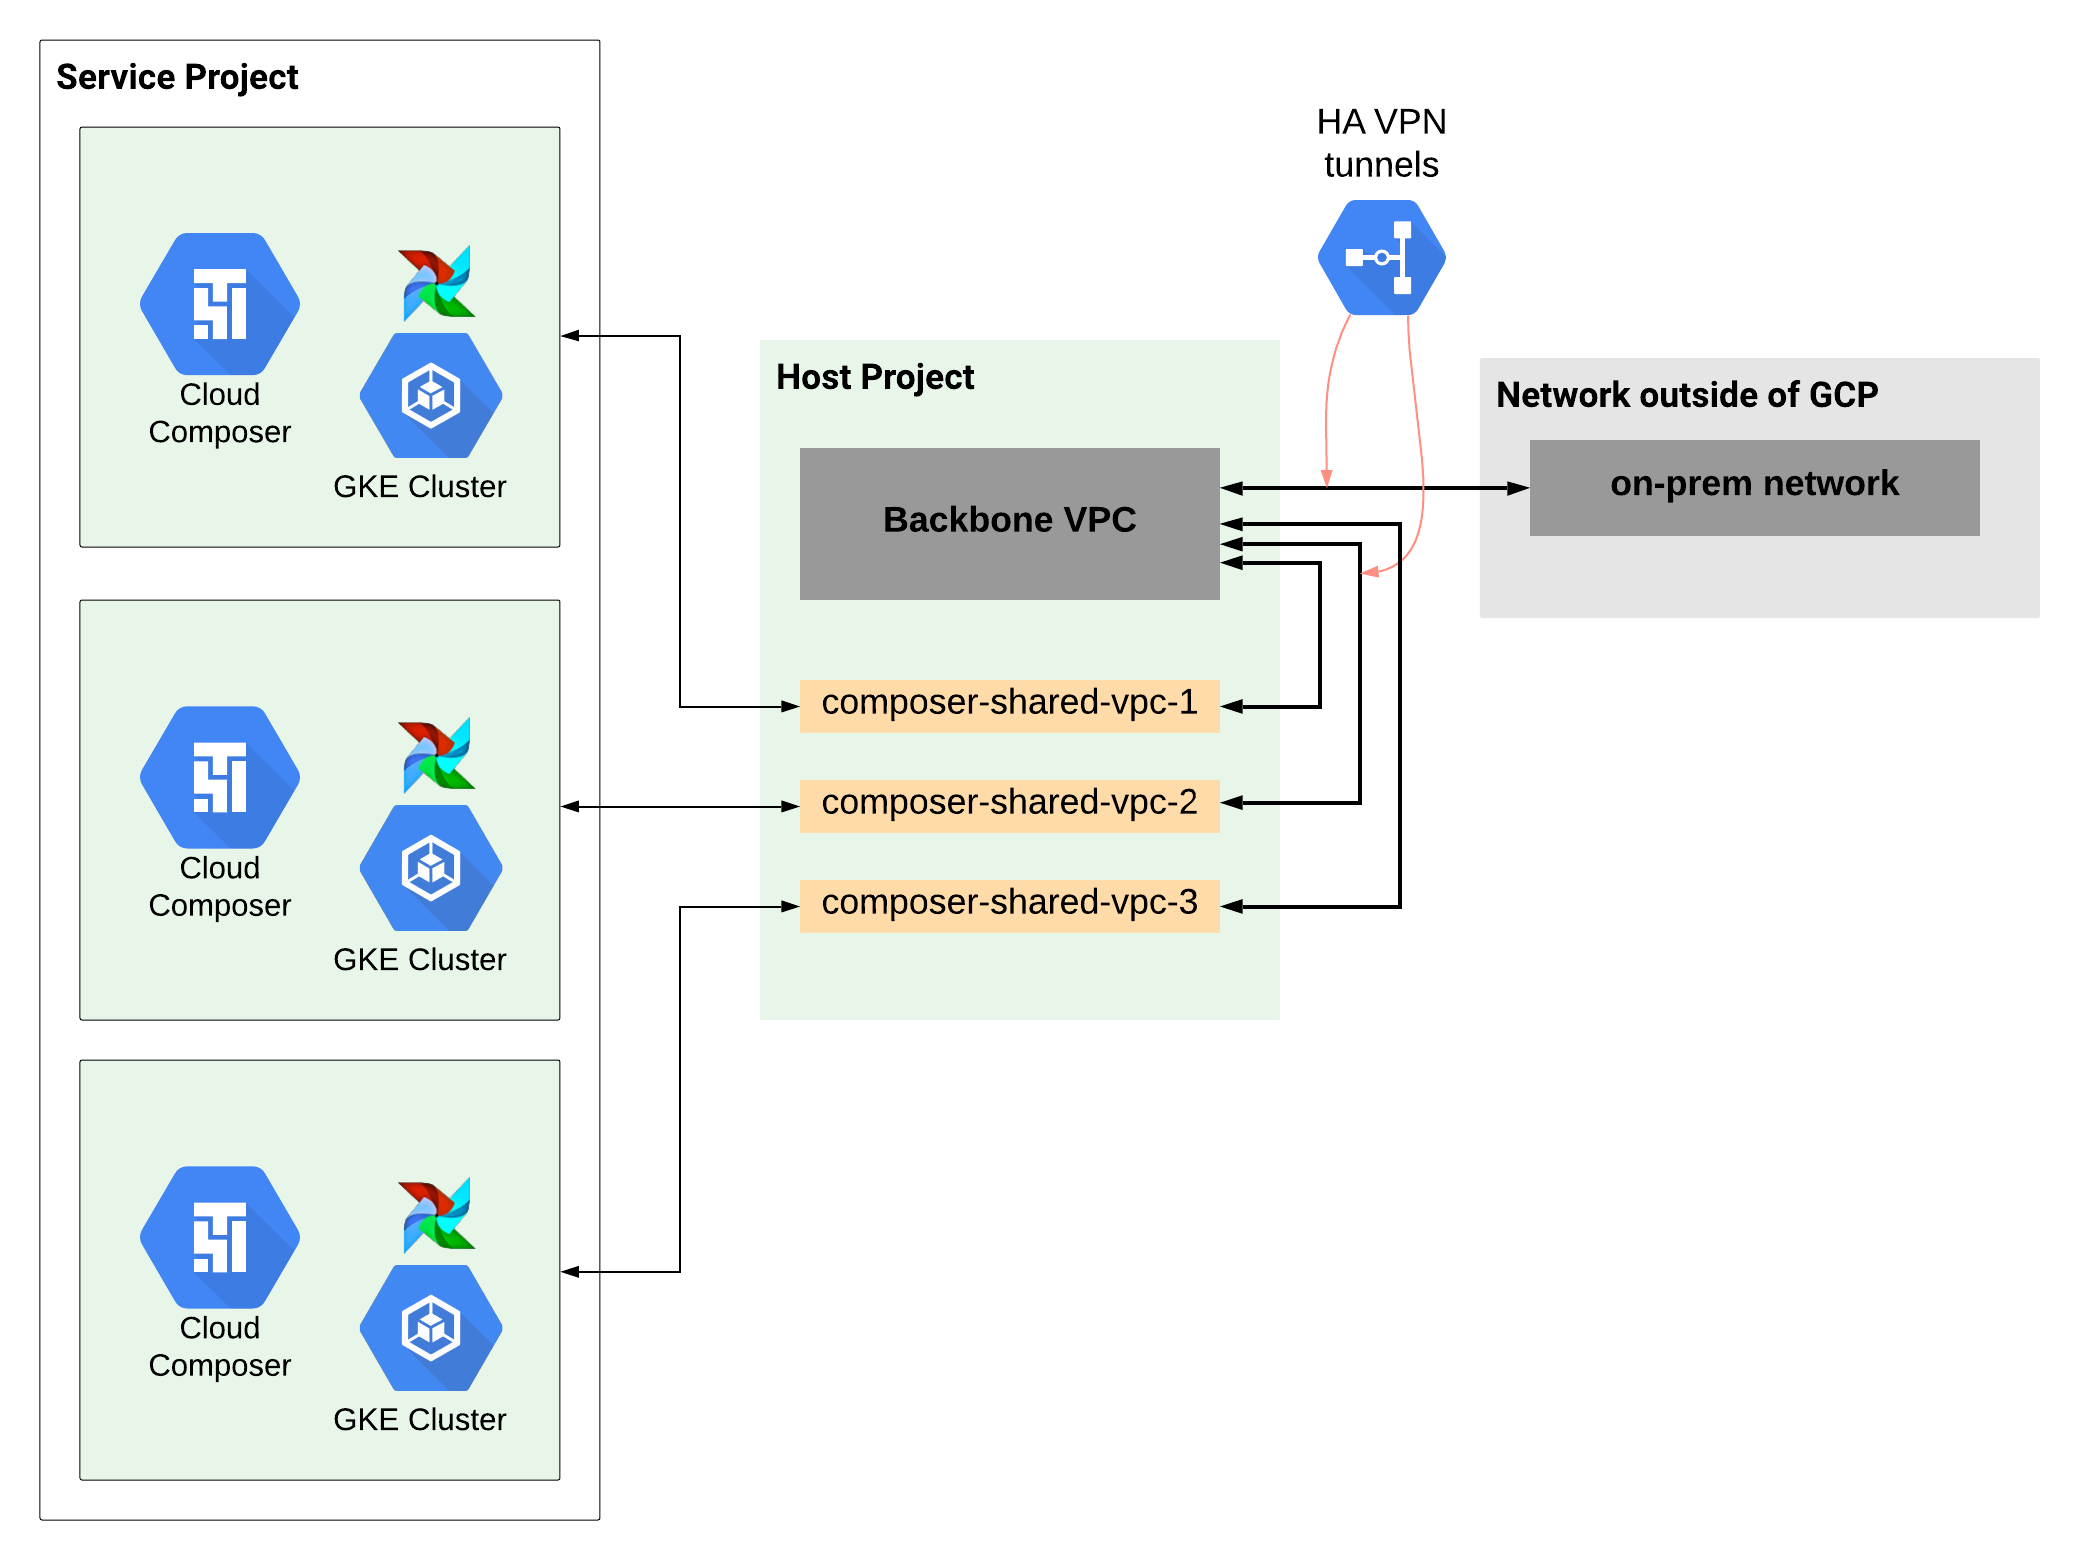 Large-scale network setup in a Shared VPC scenario